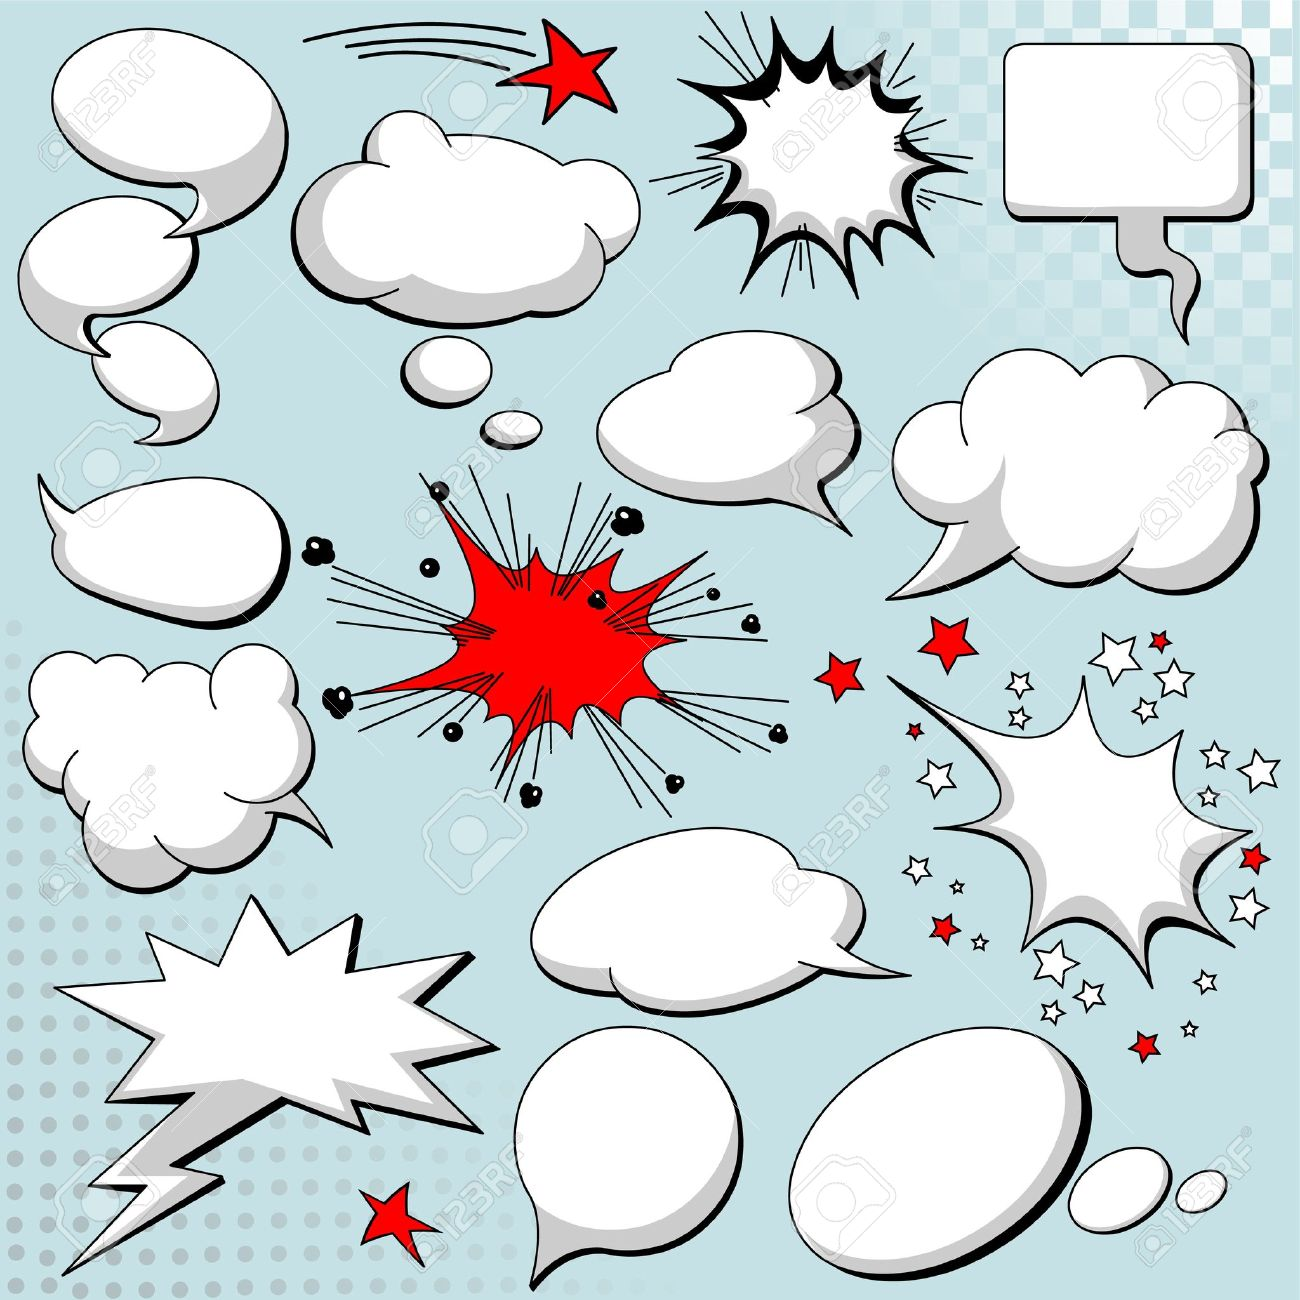 Comics style speech bubbles / balloons on background Stock Vector - 8723543